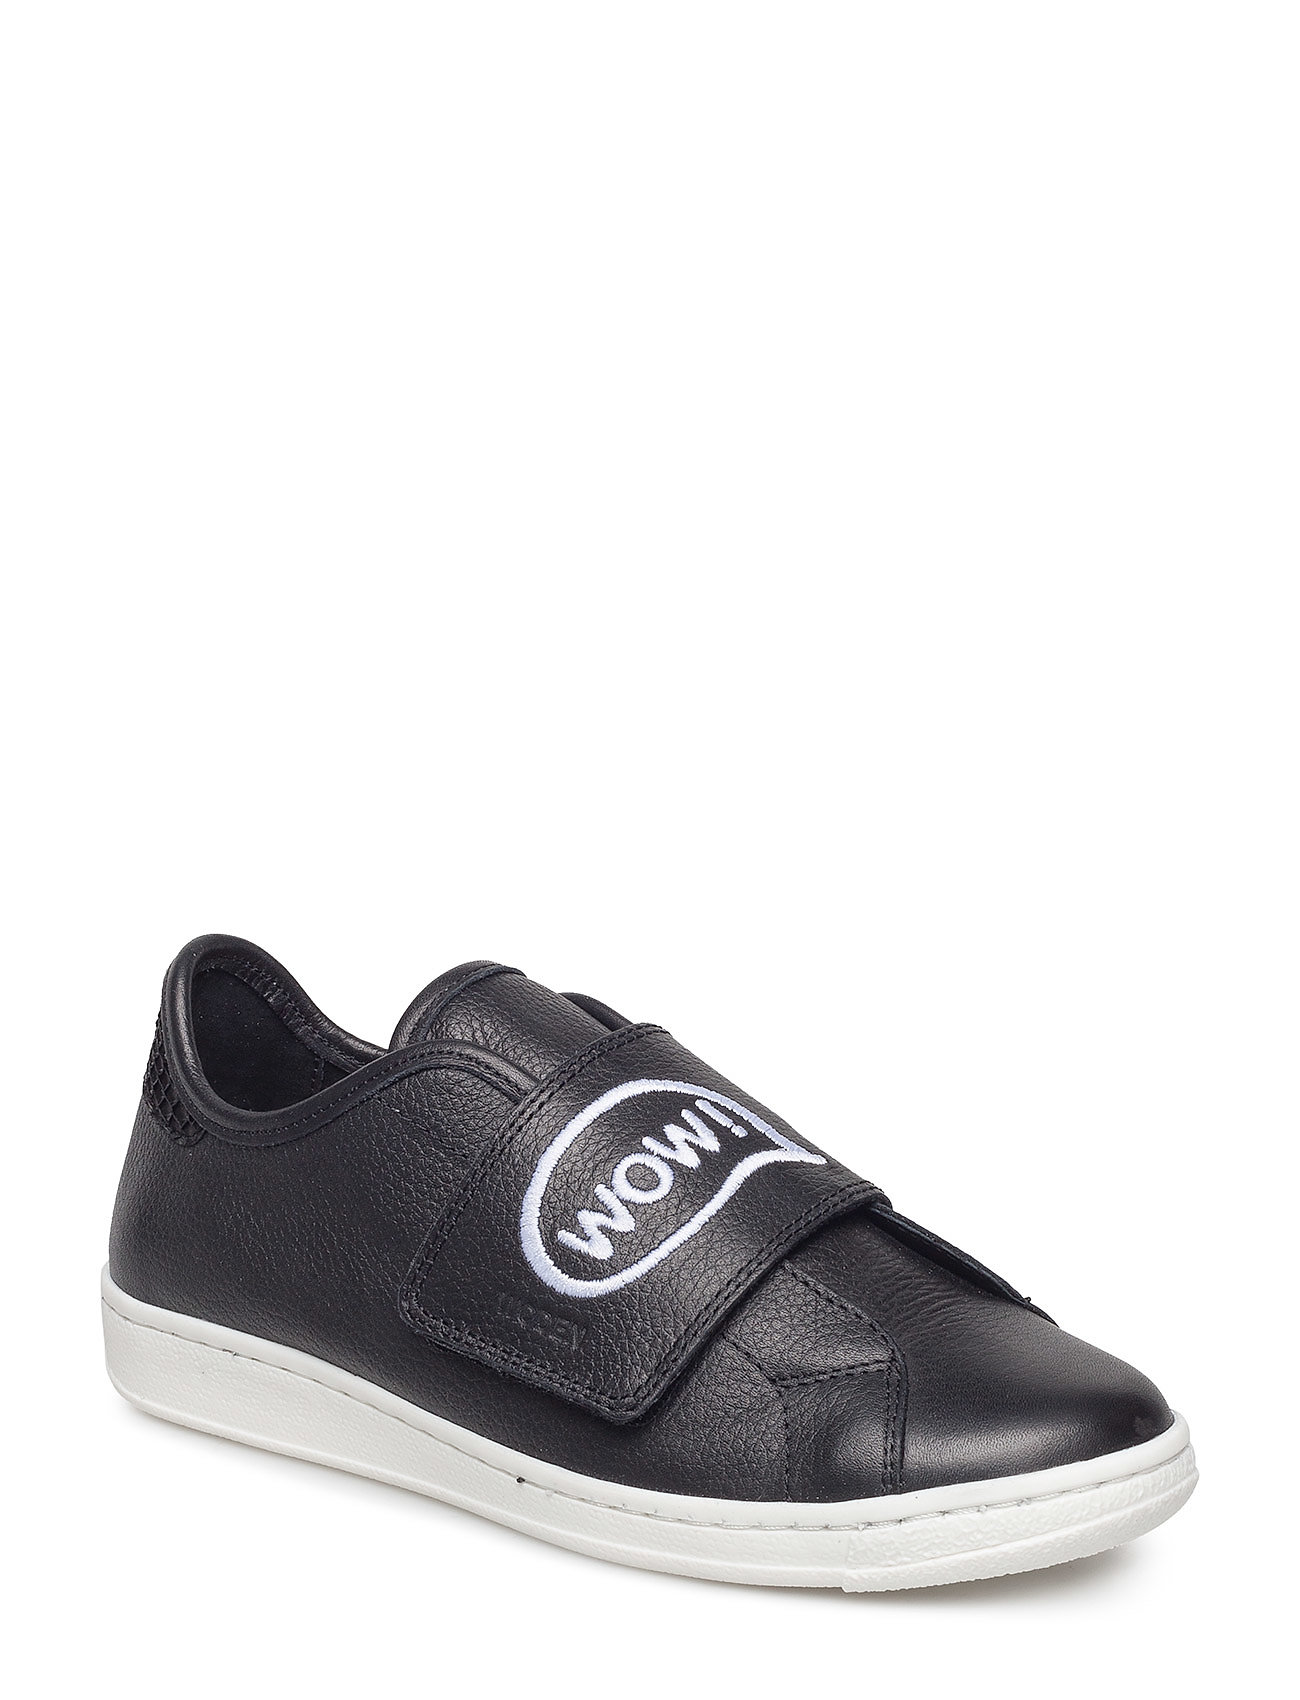 c7bc4209eed Sort Woden Wow Wonder Teen sneakers for børn - Pashion.dk